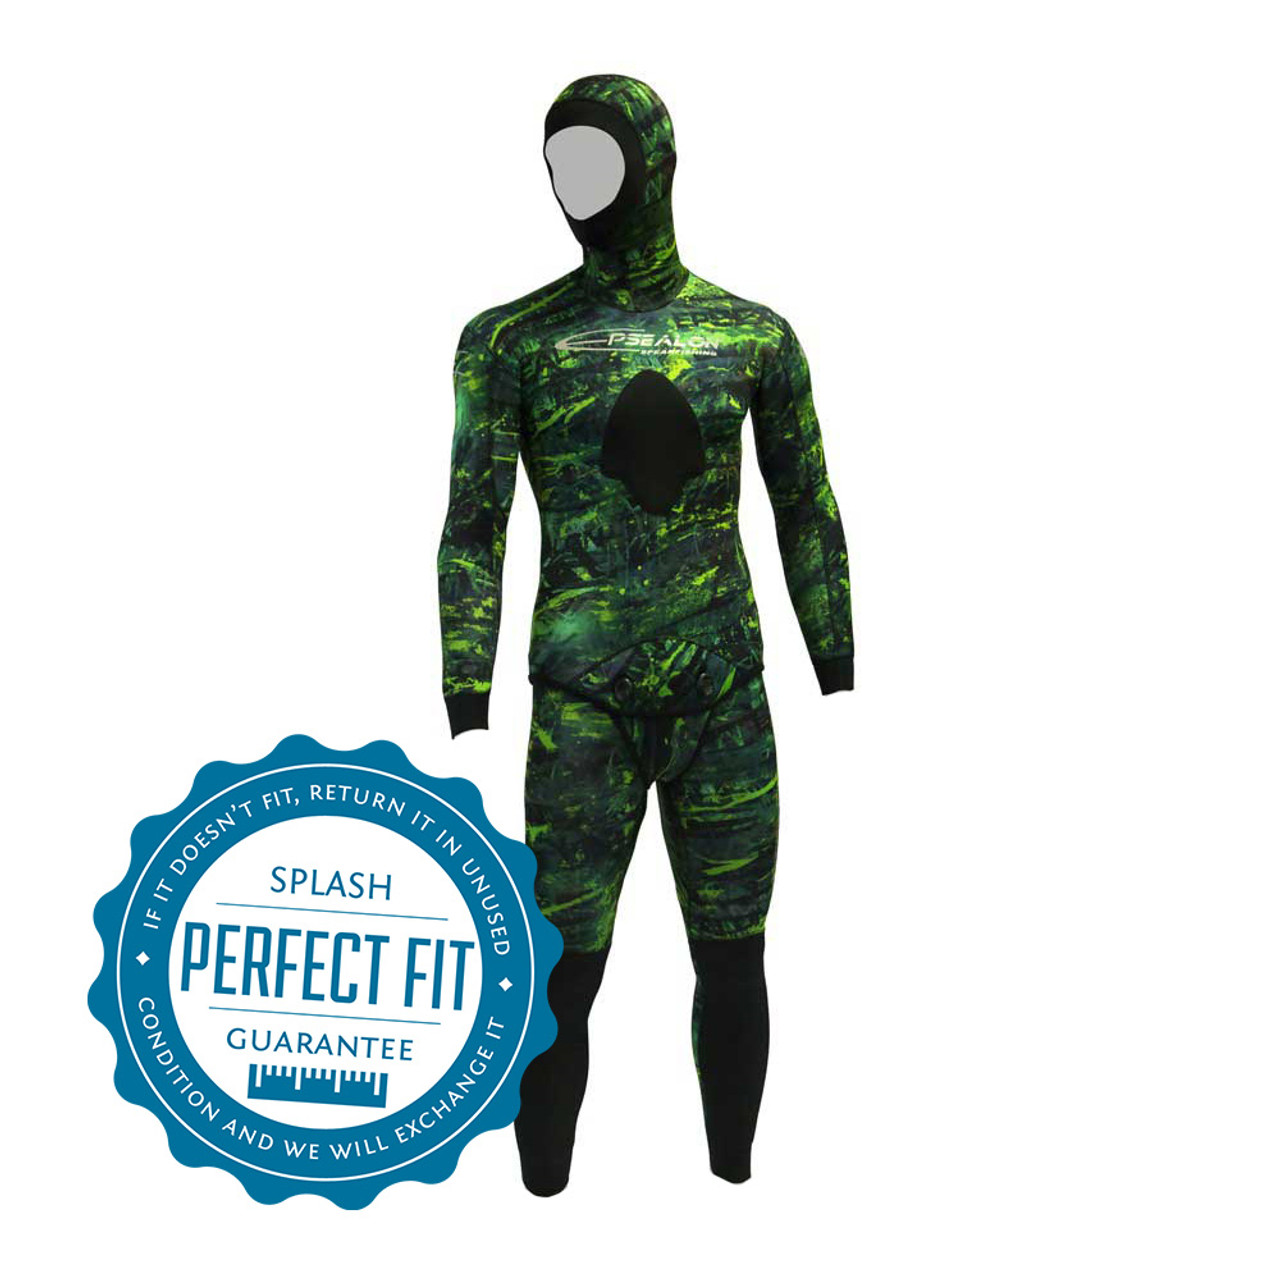 8a73f6e8830b Epsealon Green Fusion 3mm Wetsuit - Splash Dive Limited